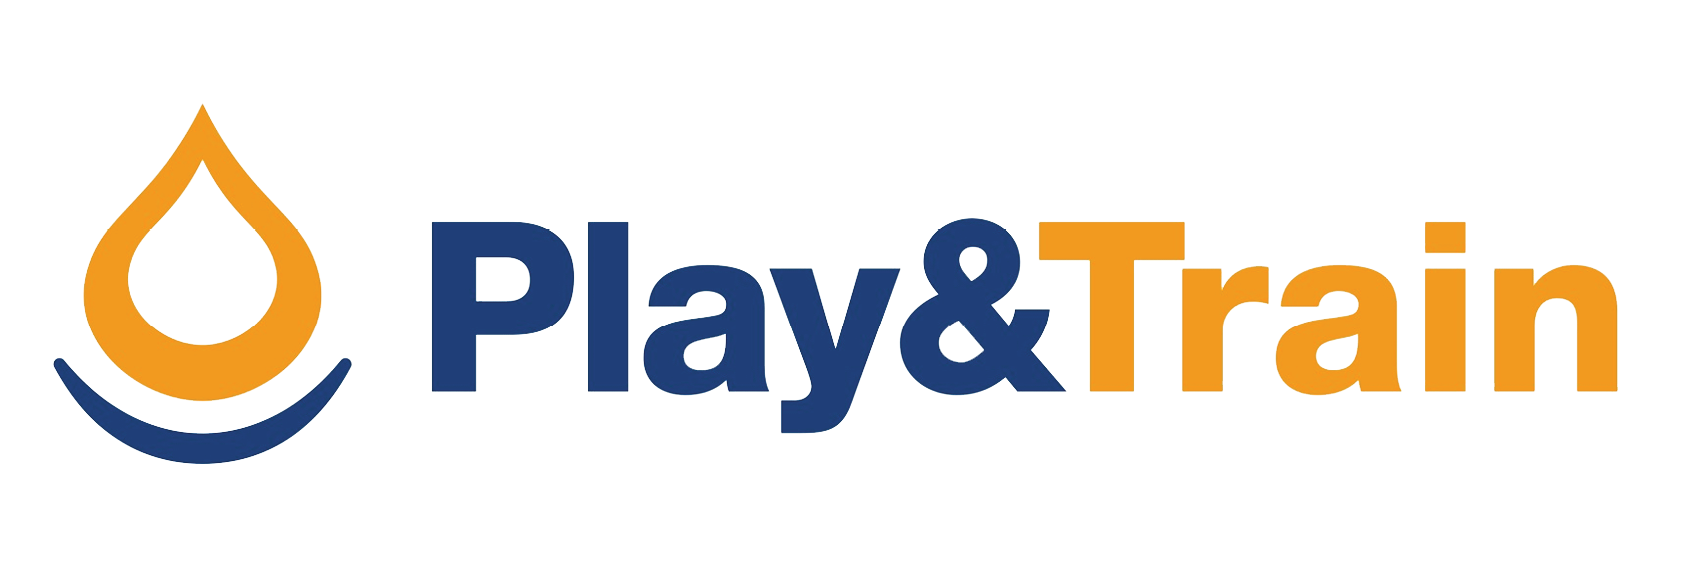 play & train - Play & Trainis a non-profit association involved in sport, education and development from the grass roots to the elite level for people with a disability and their families. They facilitate UN Camp Sweden on behalf of the International Paralympics Committee.